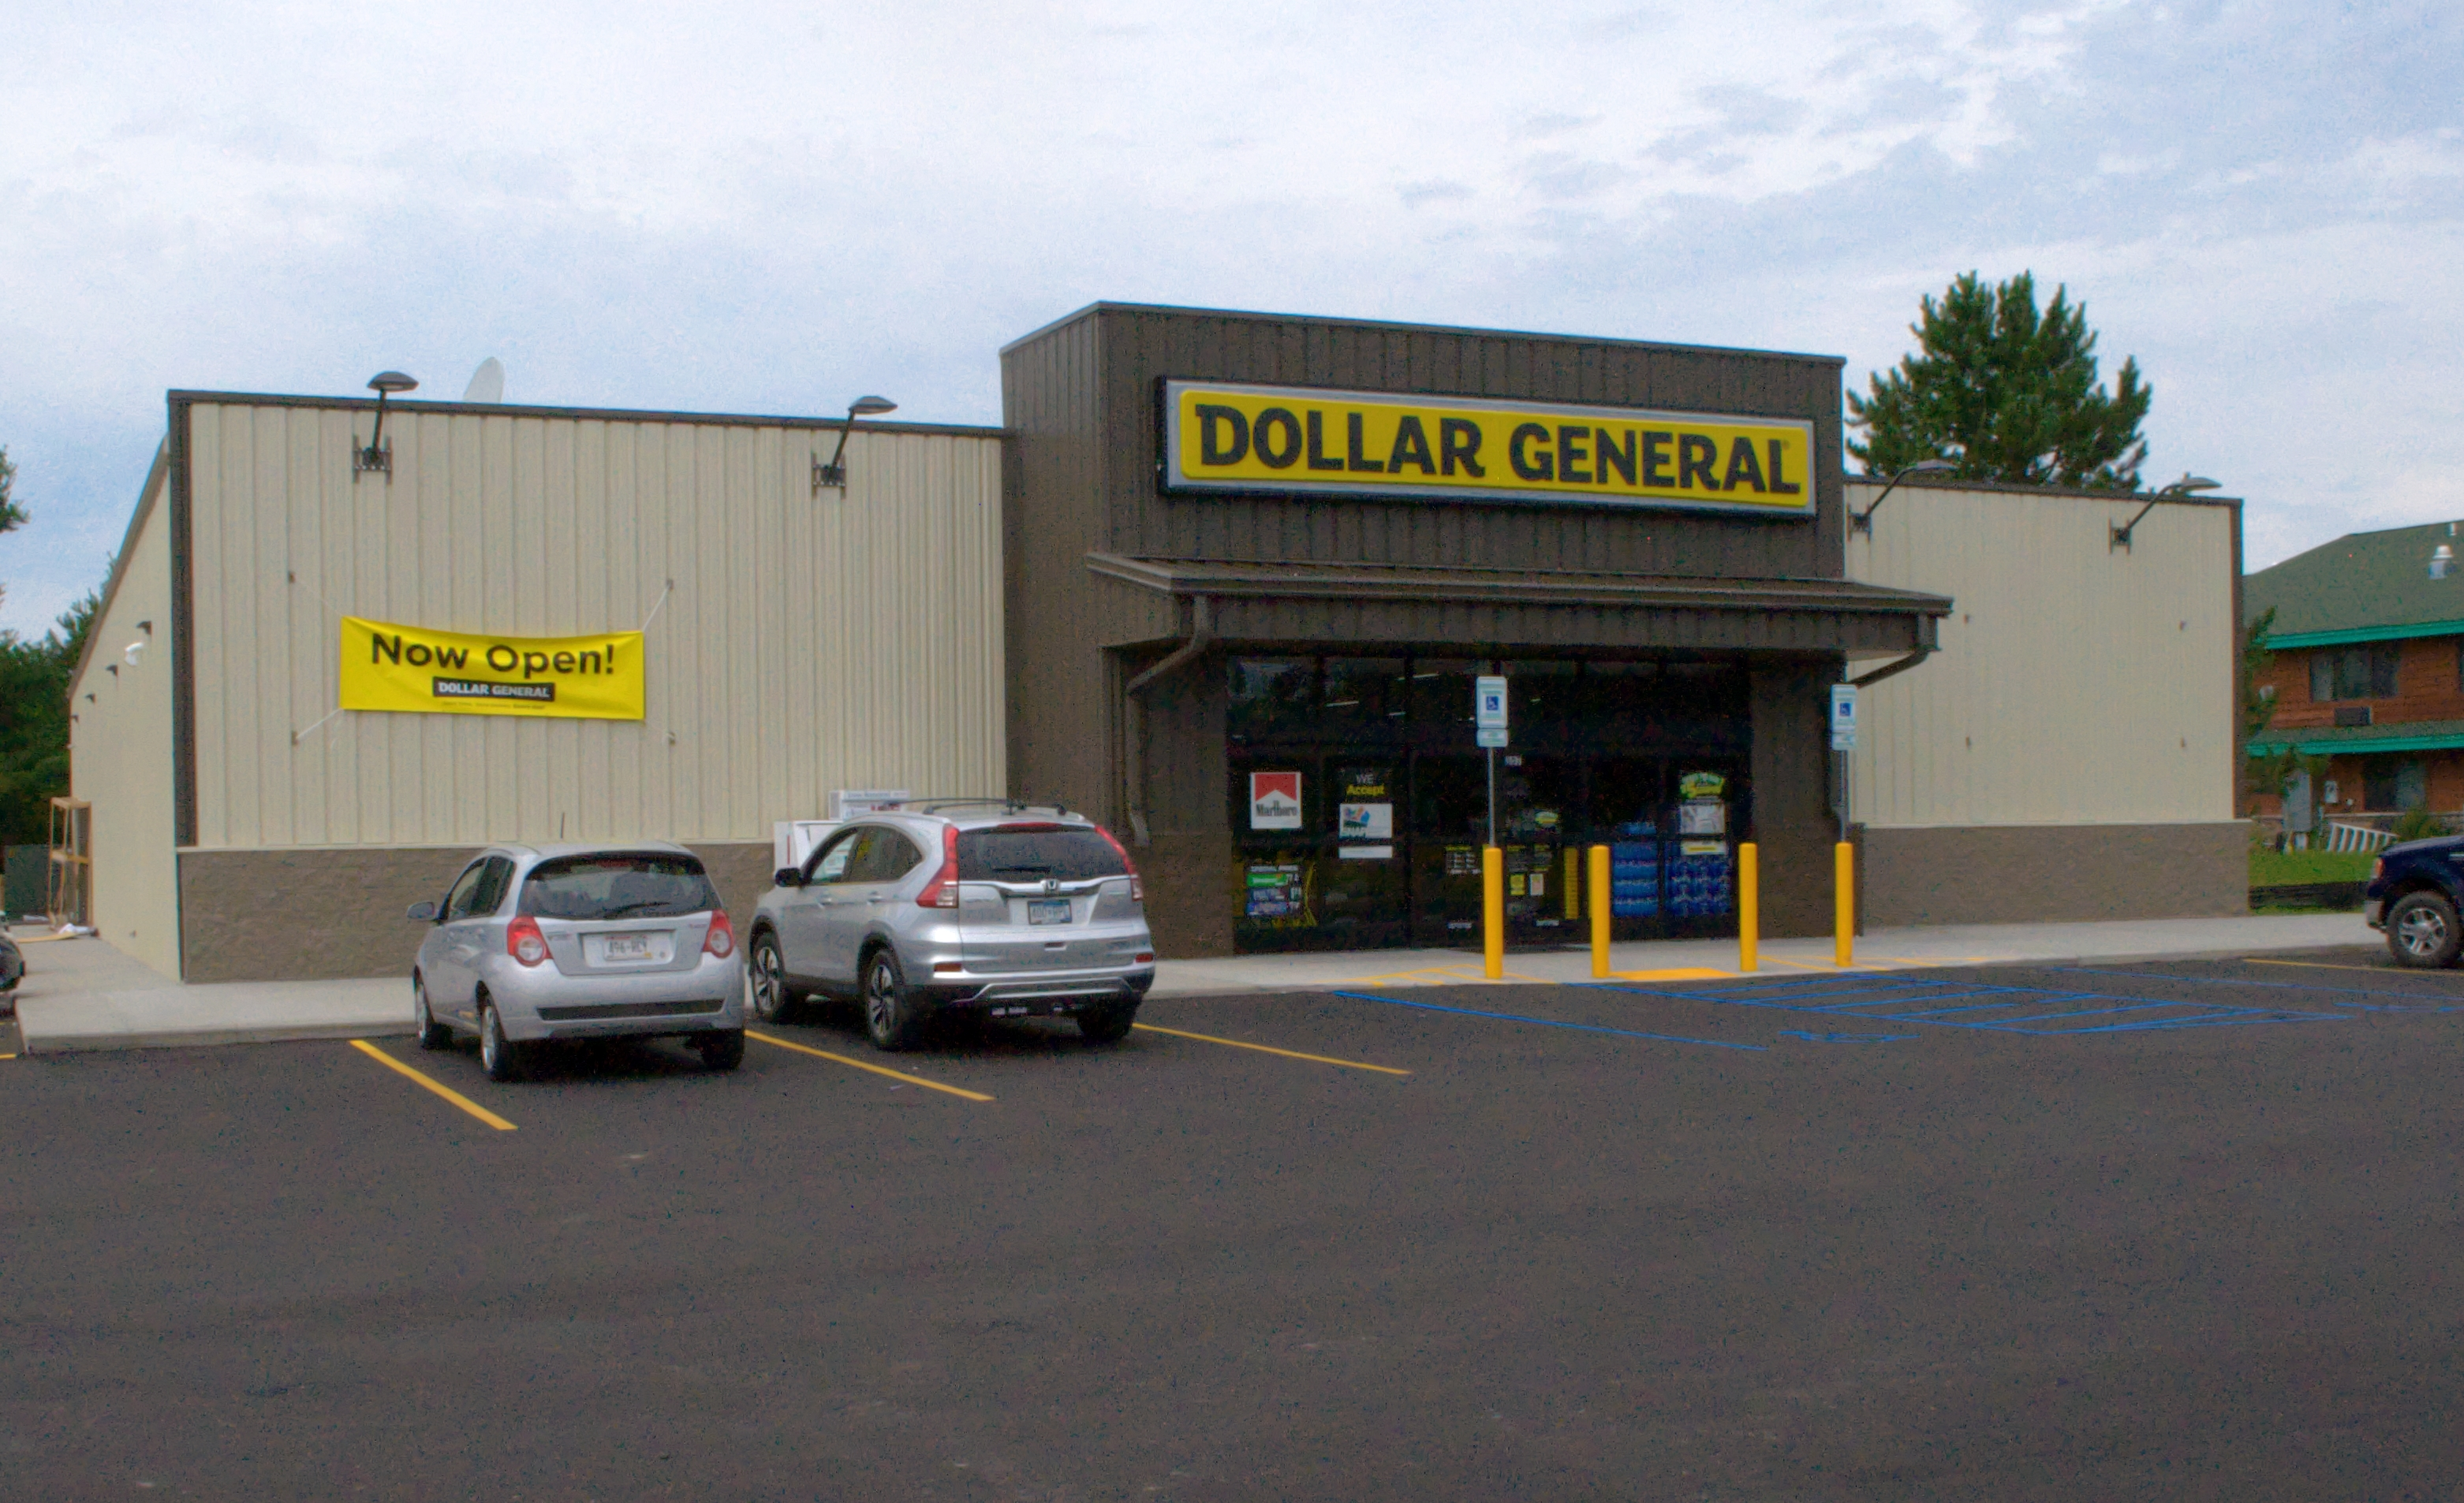 Dollar General has more than 15, stores in 44 states and counting! Most of our stores are located in small to mid-size communities. To find your closest Dollar General, visit our store locator page here.